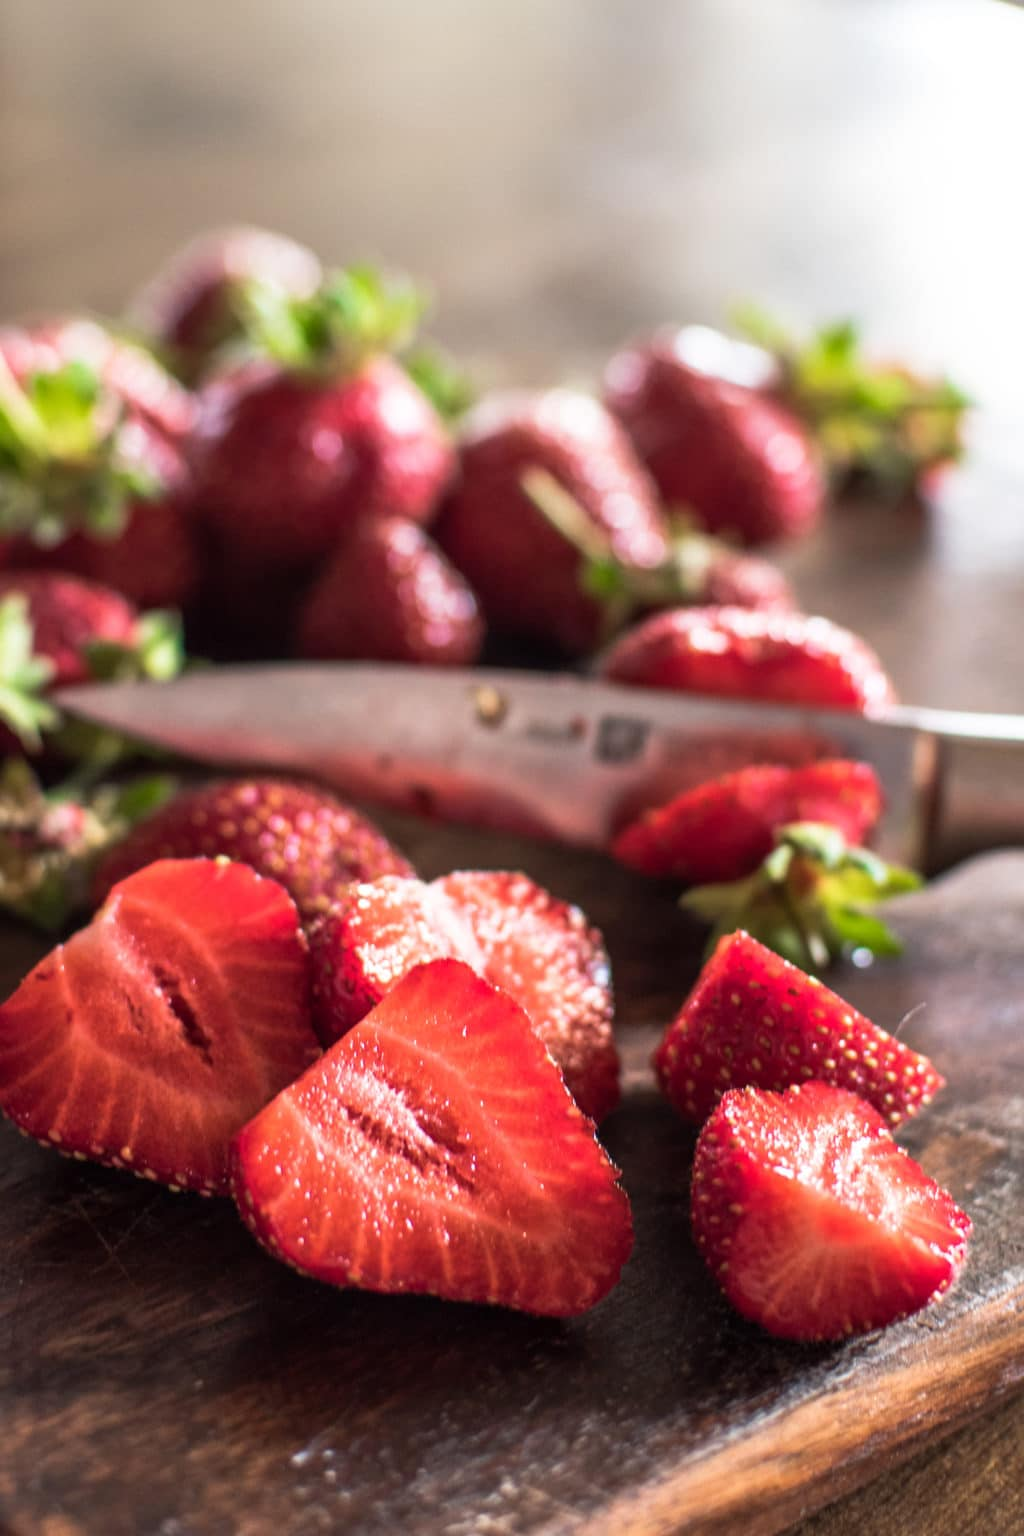 a close up shot of ripe sliced strawberries on a wooden cutting board